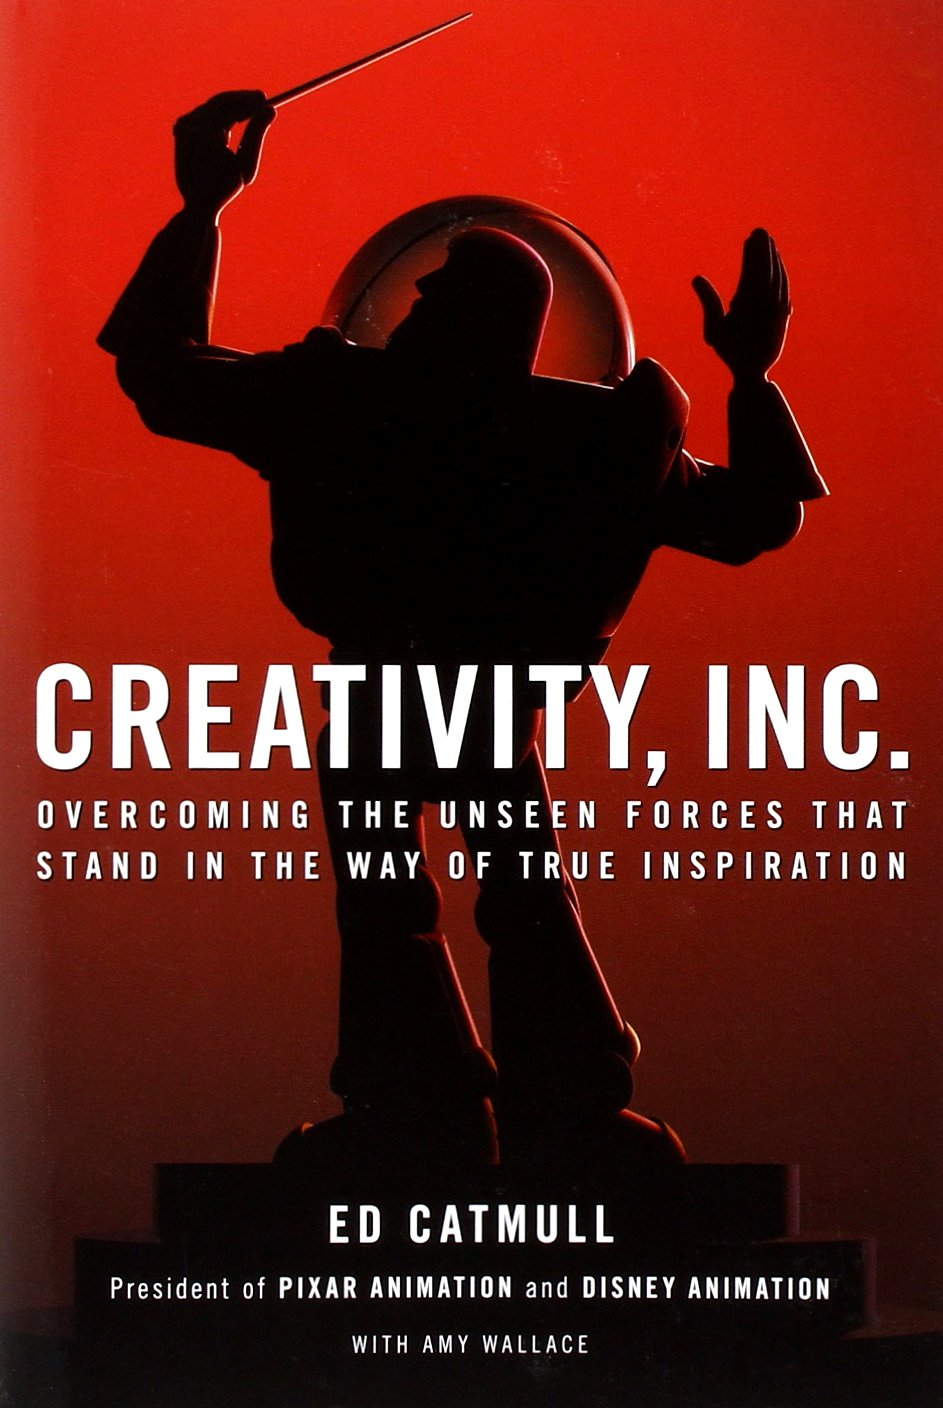 Creativity, Inc.: TOP 5 Livros recomendados por Mark Zuckerberg